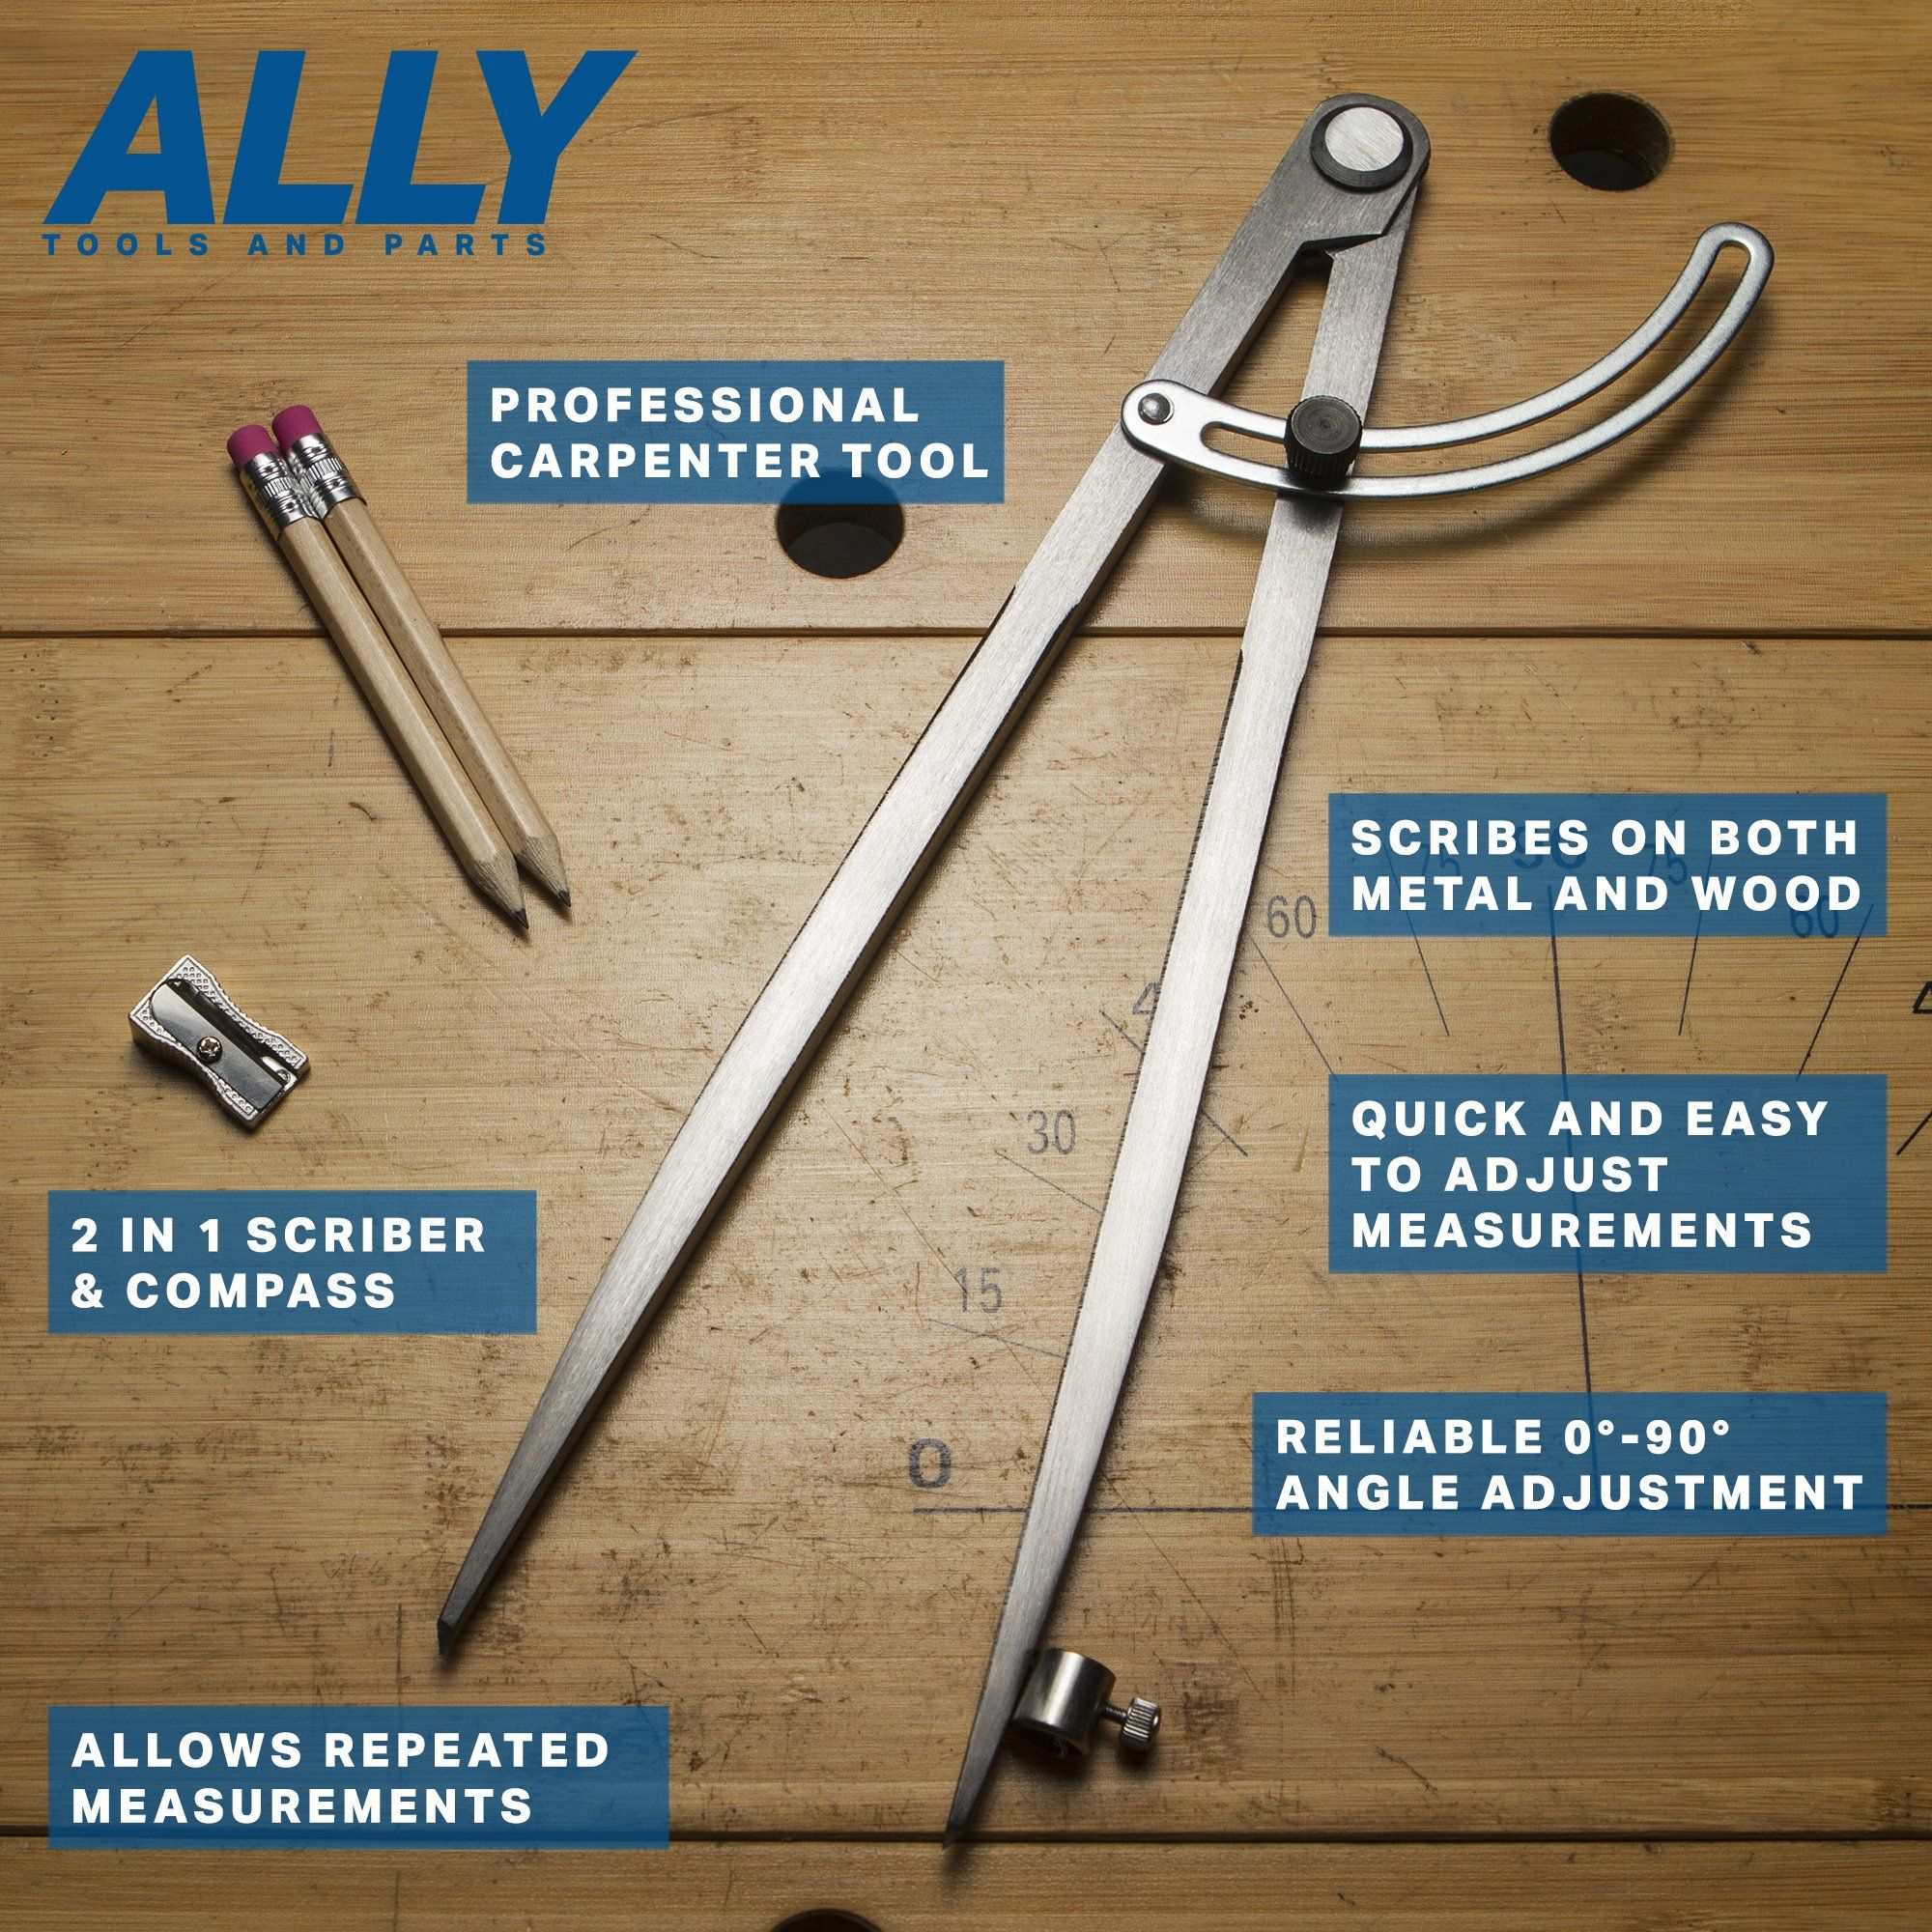 ally tools 12 wing divider pencil holder / compass scribe